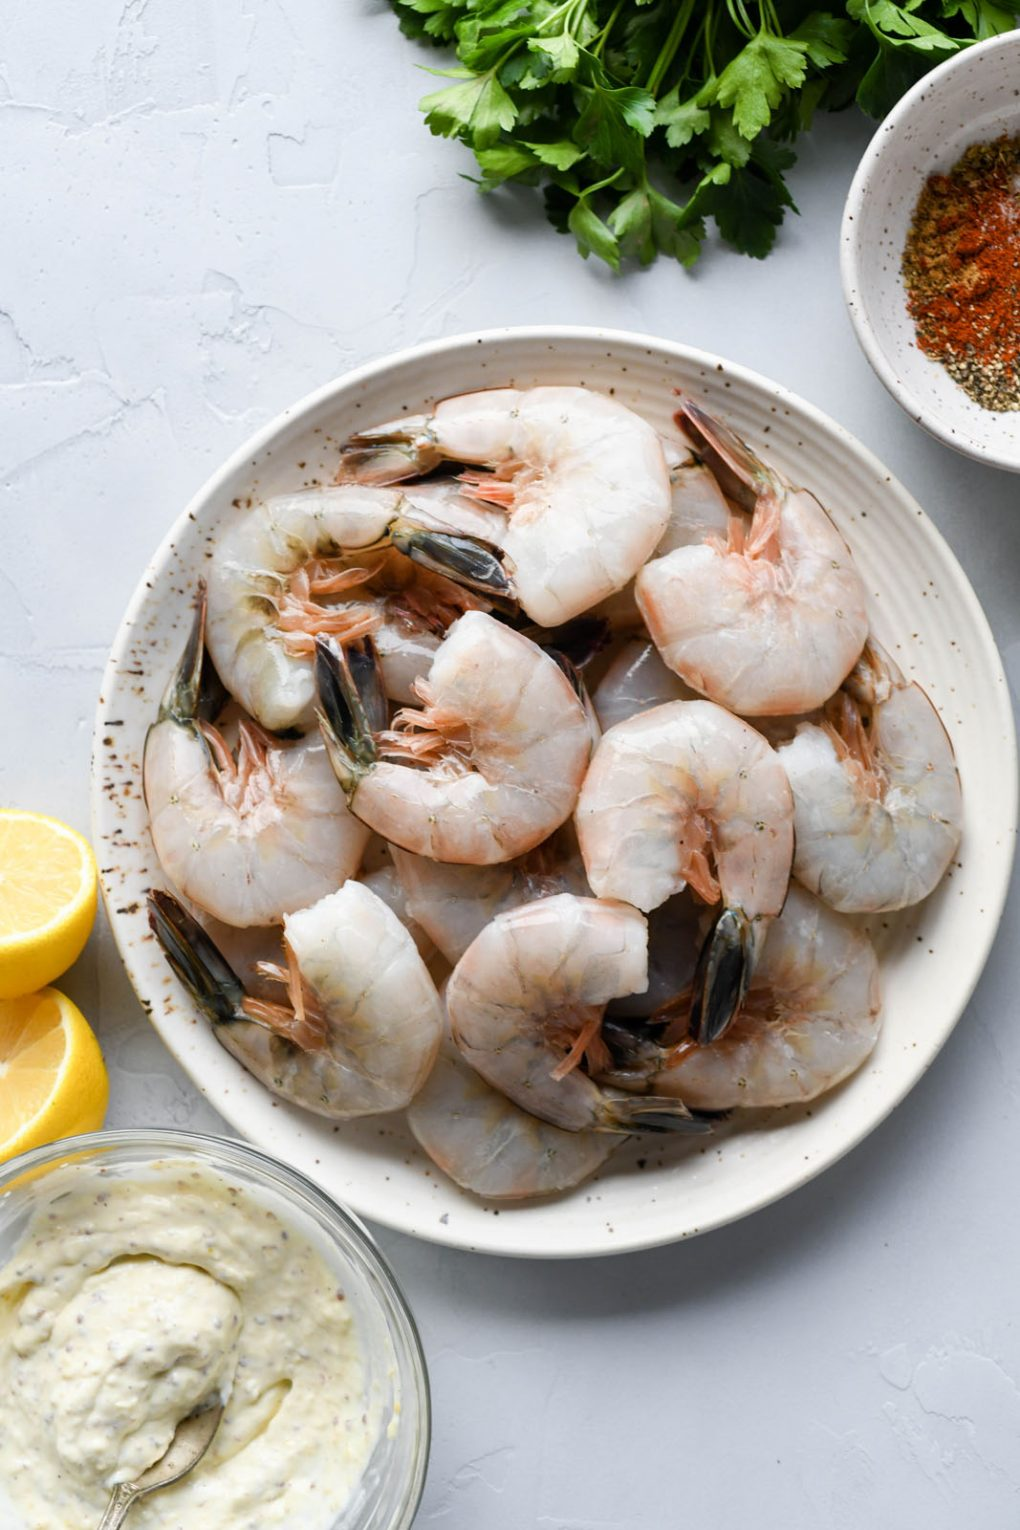 Picture of the ingredients for Whole30 cajun spiced shrimp - plate of raw shell on shrimp, small bowl of aioli, a few lemon wedges, a small bowl filled with spice blend, and a bundle of fresh herbs.